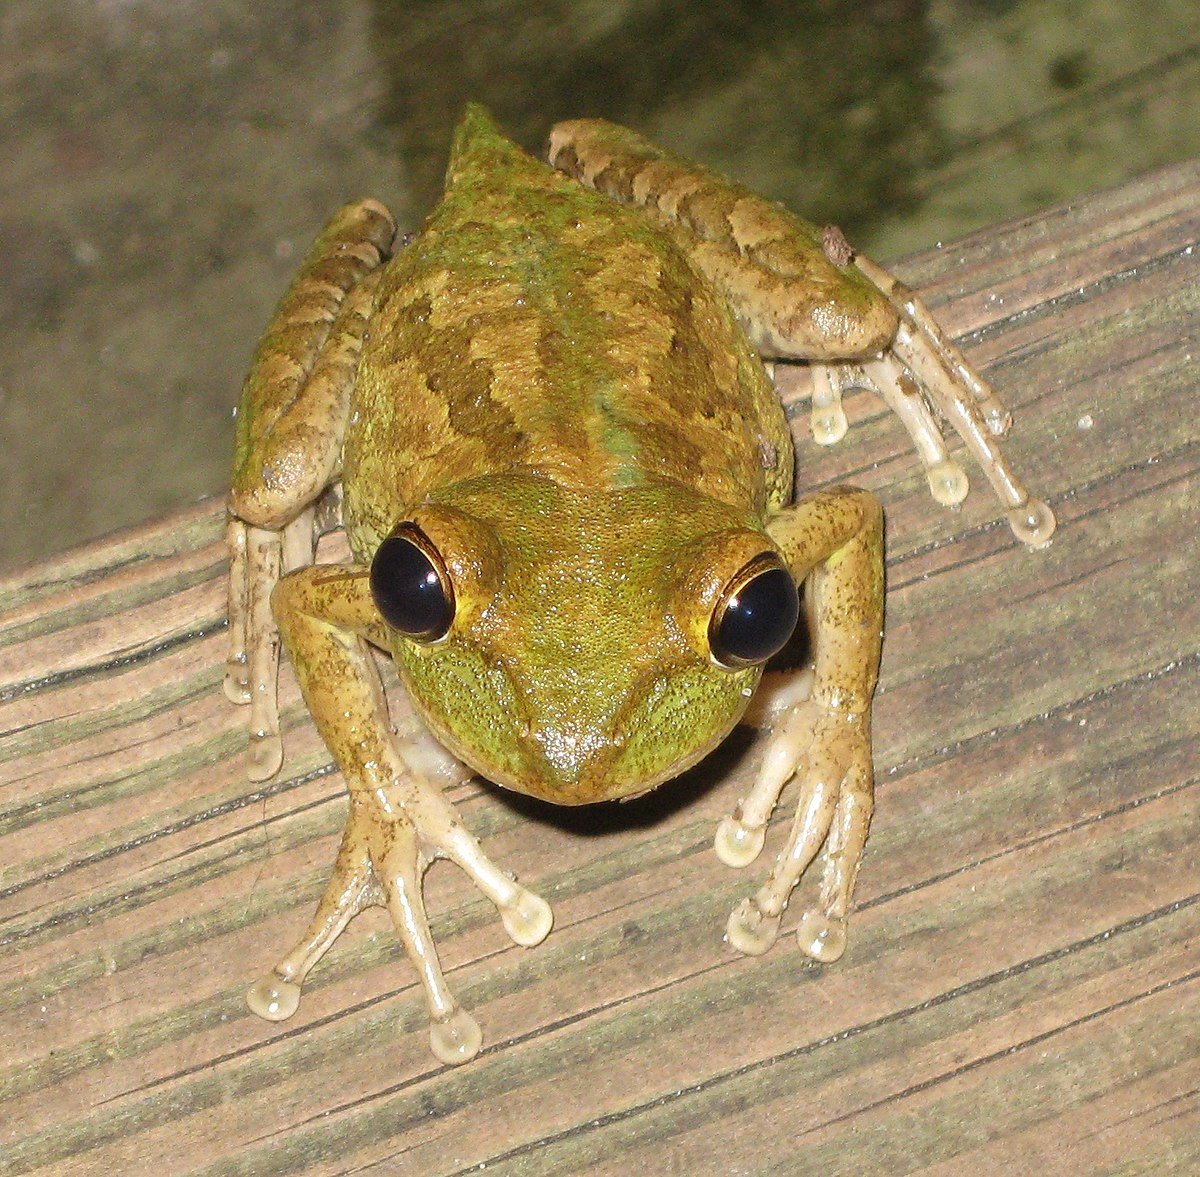 cuban tree frog wikipedia